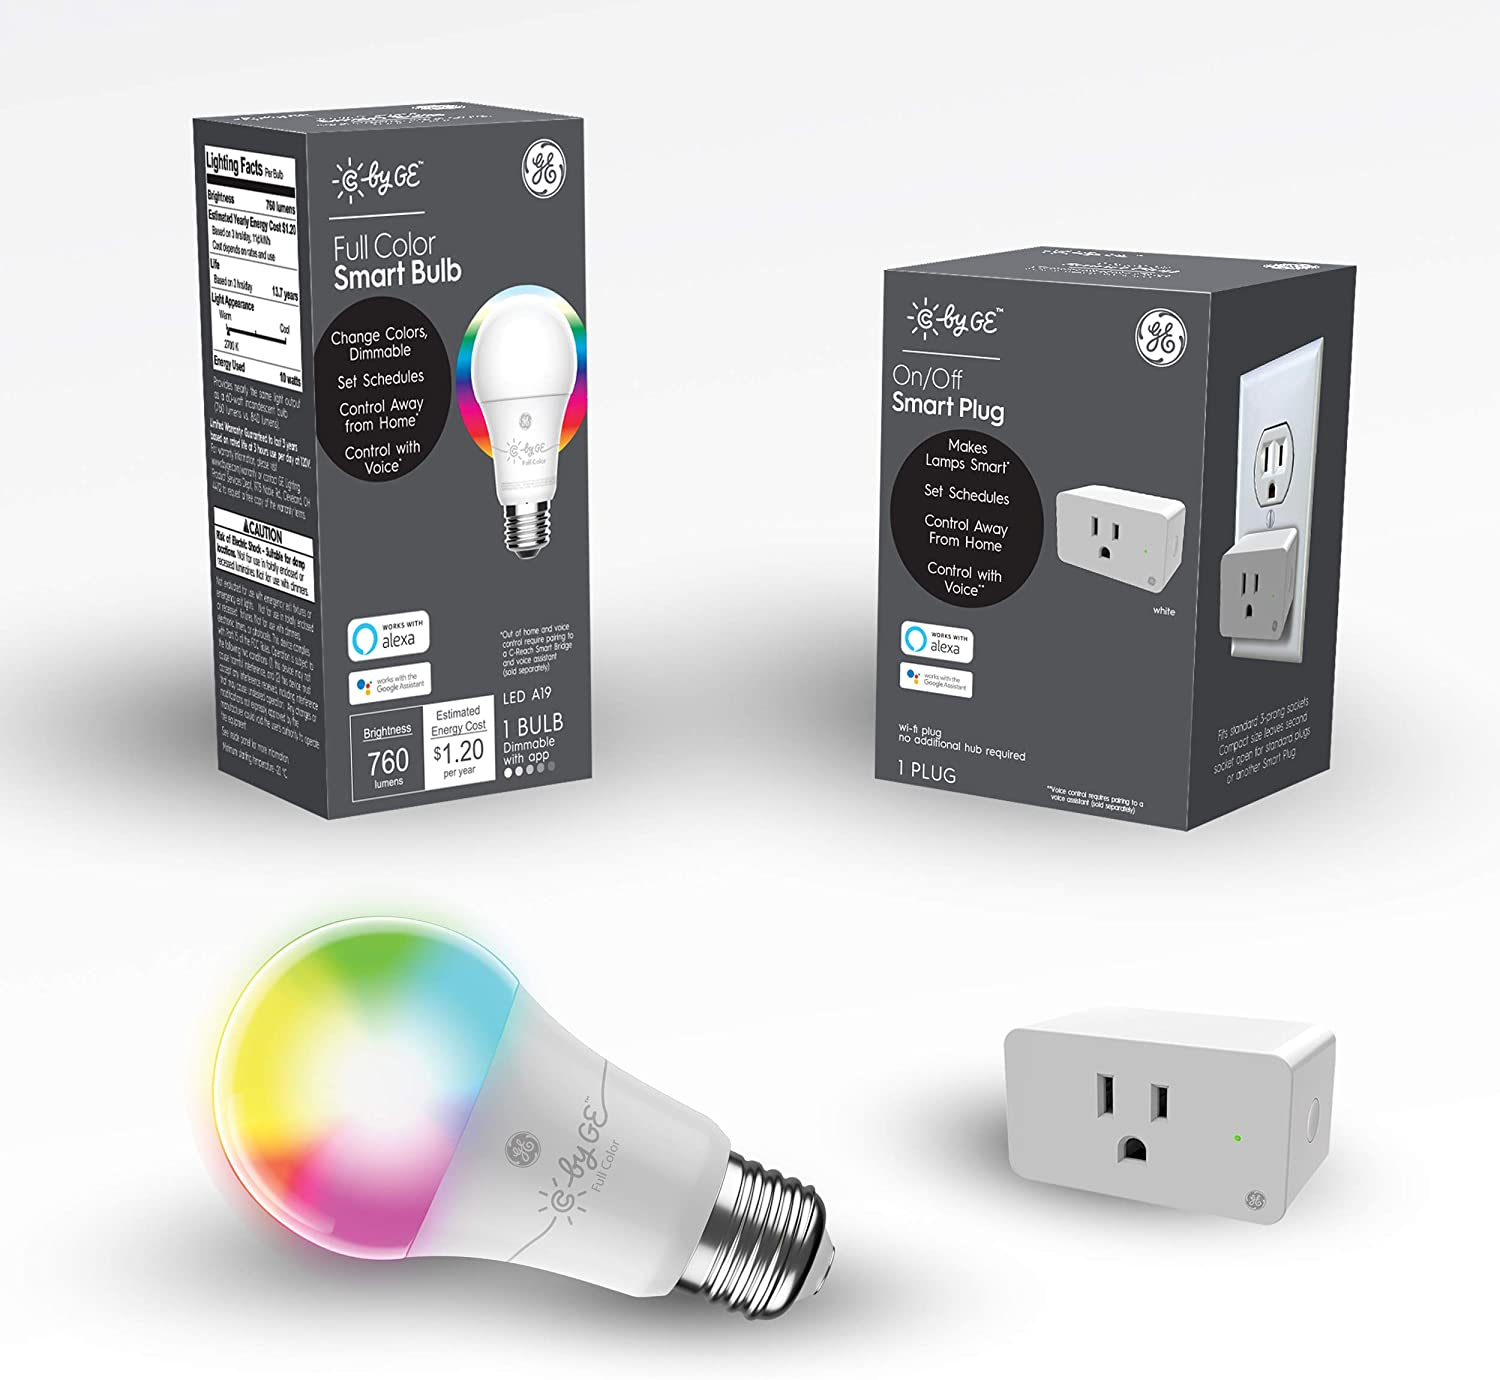 C by Now on High quality new sale GE Smart Bundle Pack and Bulb with 1 LE Plug